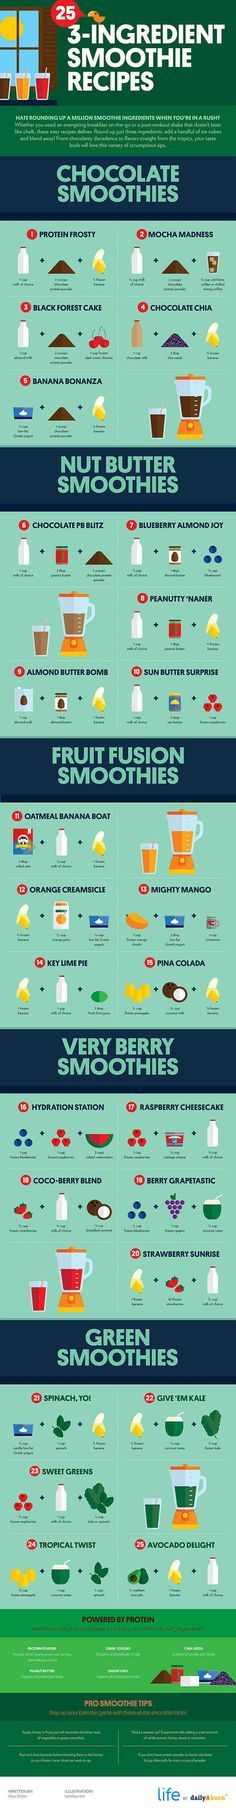 For smoothies that are even simpler.